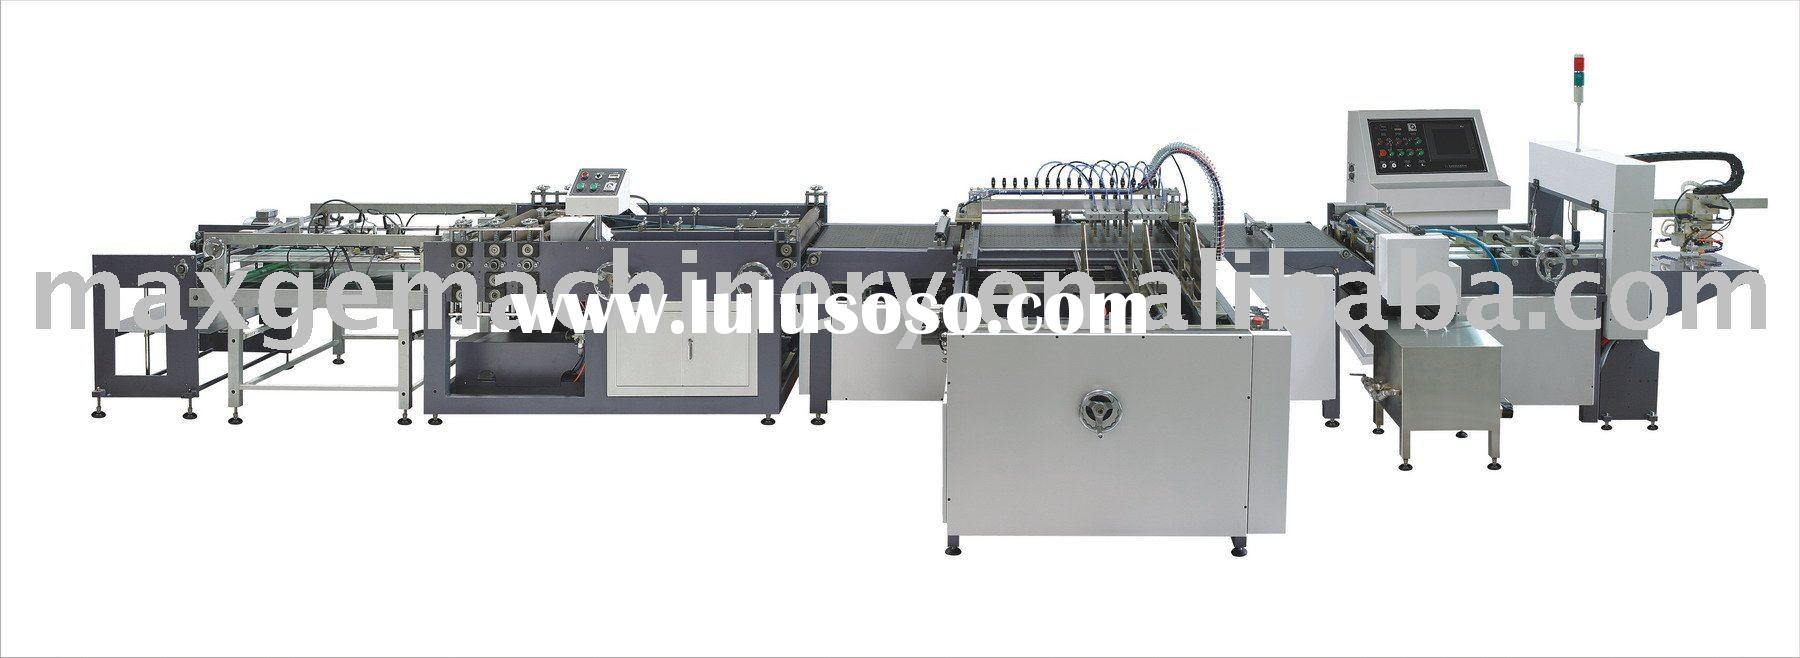 AUTOMATIC COVERING MACHINE